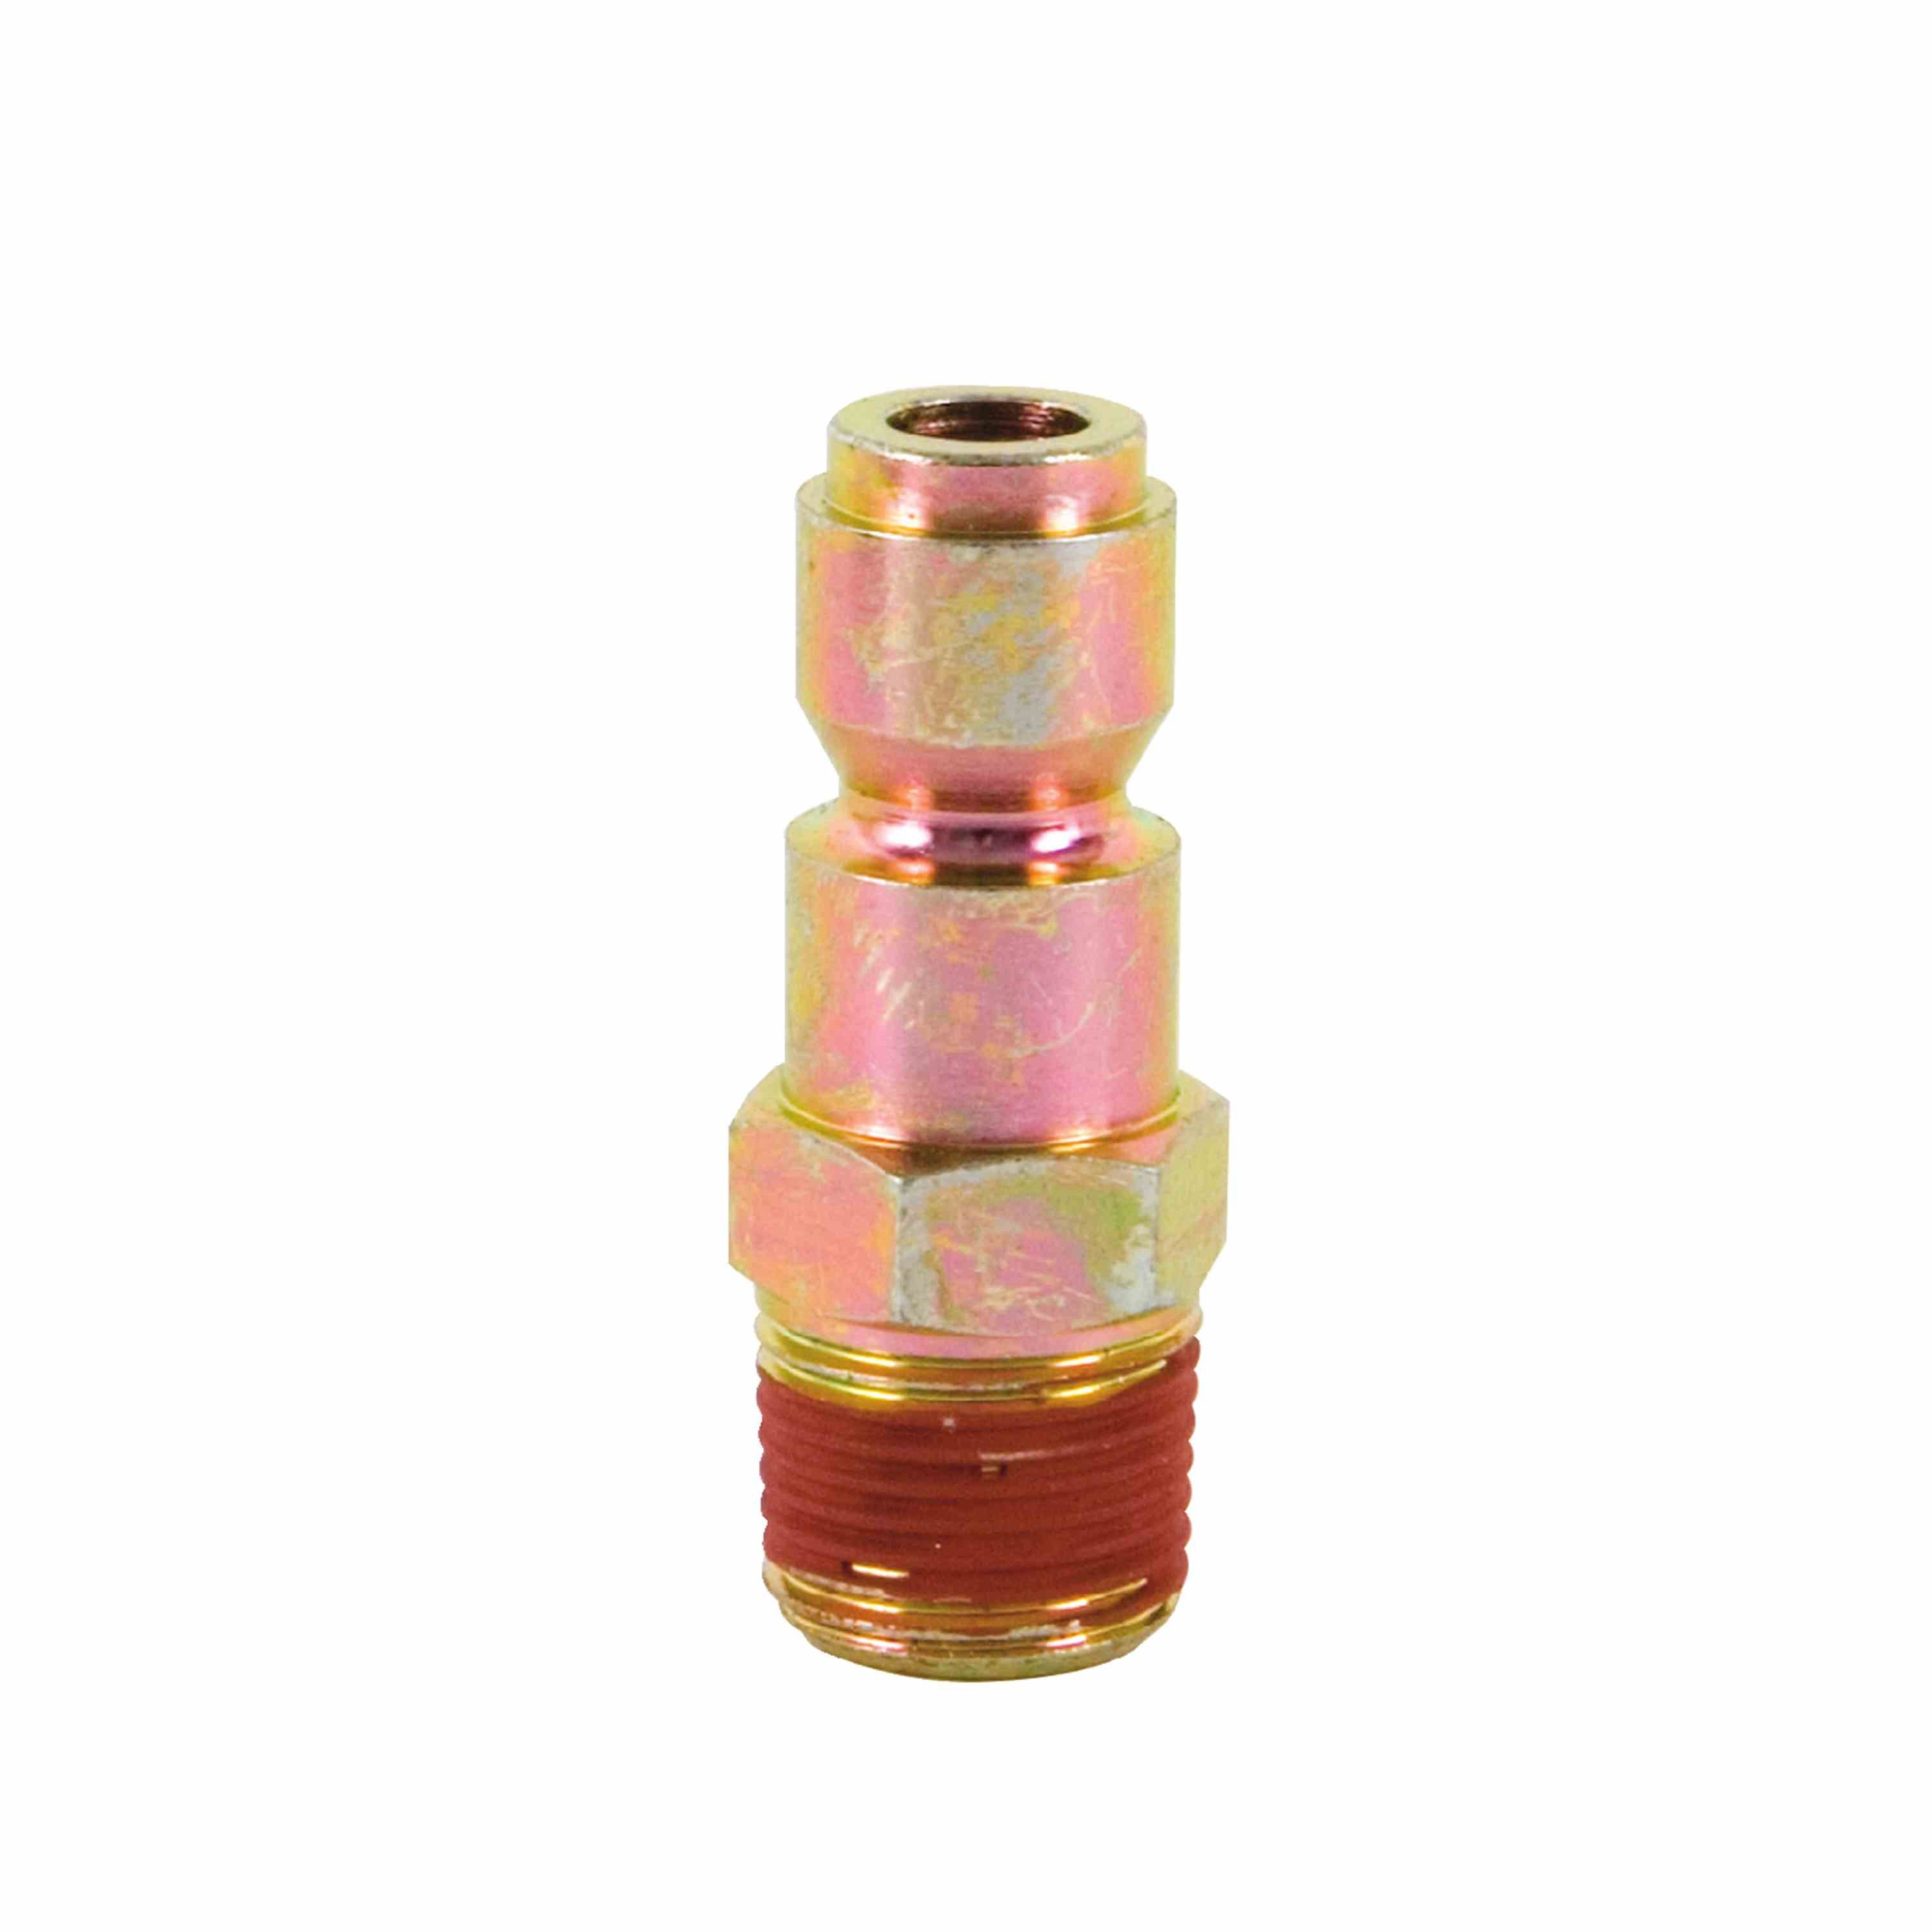 Bostitch - Automotive 38 Series Plug  38 NPT Male Thread - AP-38M